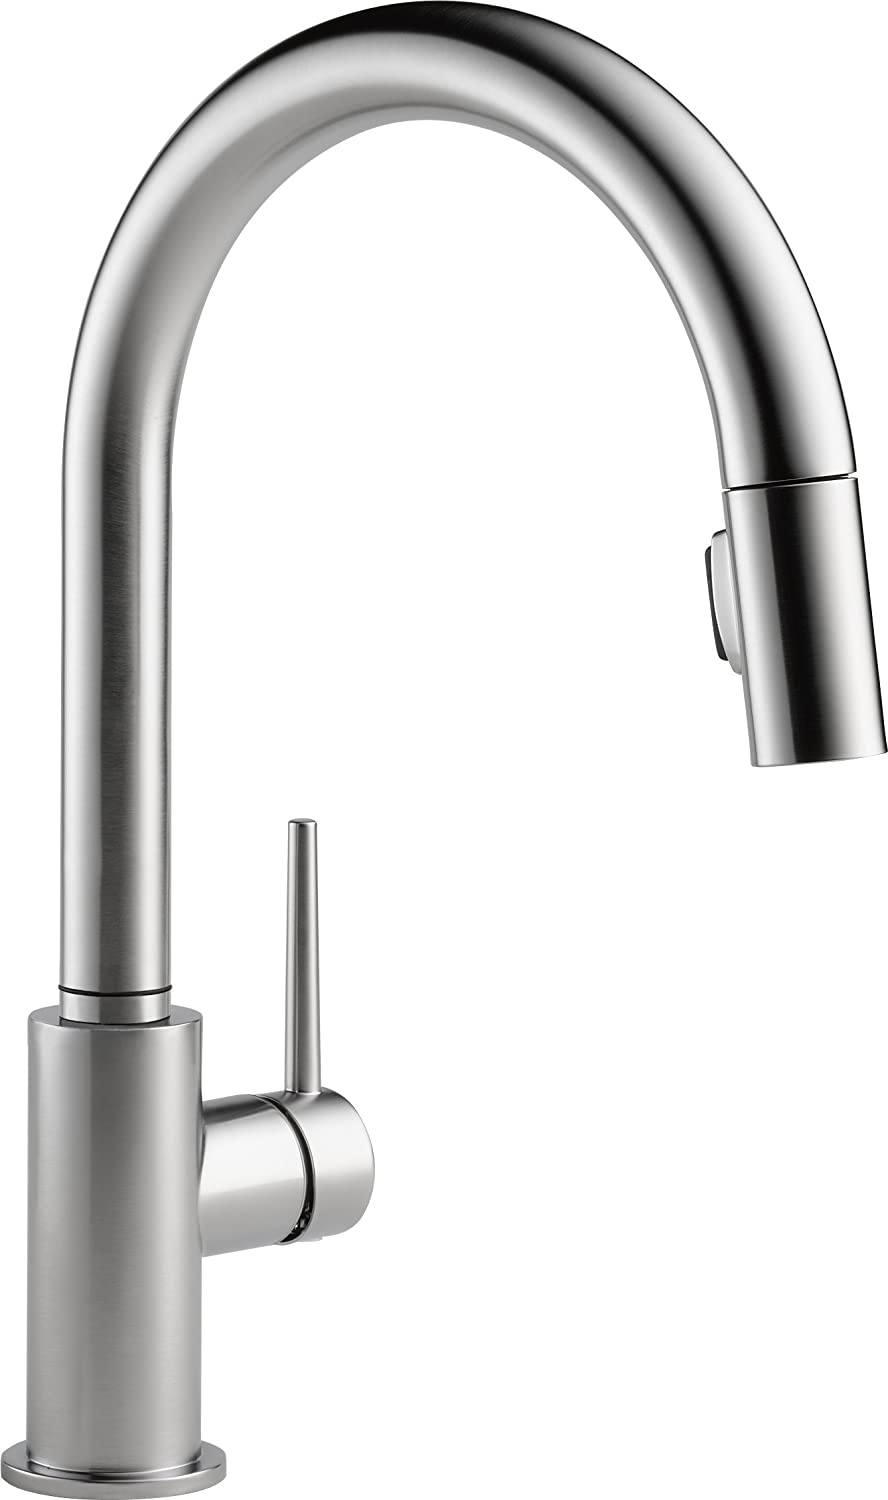 Top 10 Best Kitchen Faucets under $100, $150 to $200 Reviews in 2020 8